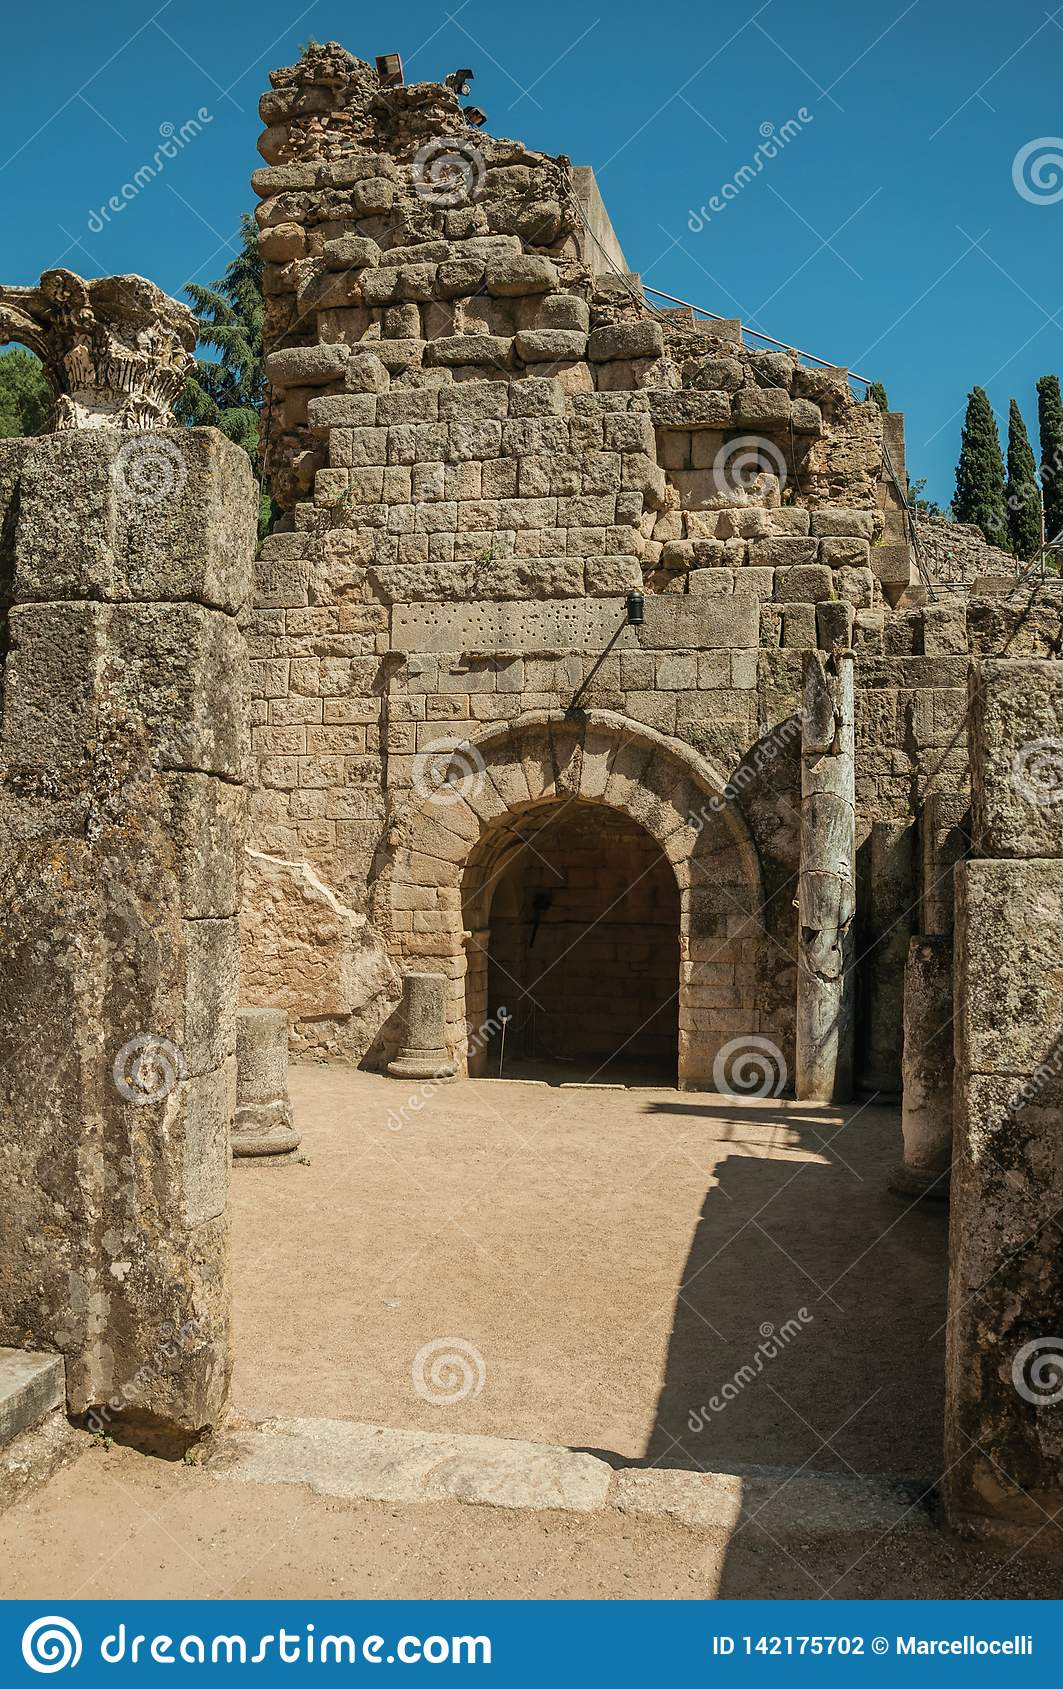 Entrance on stone wall at the Roman Theater of Merida